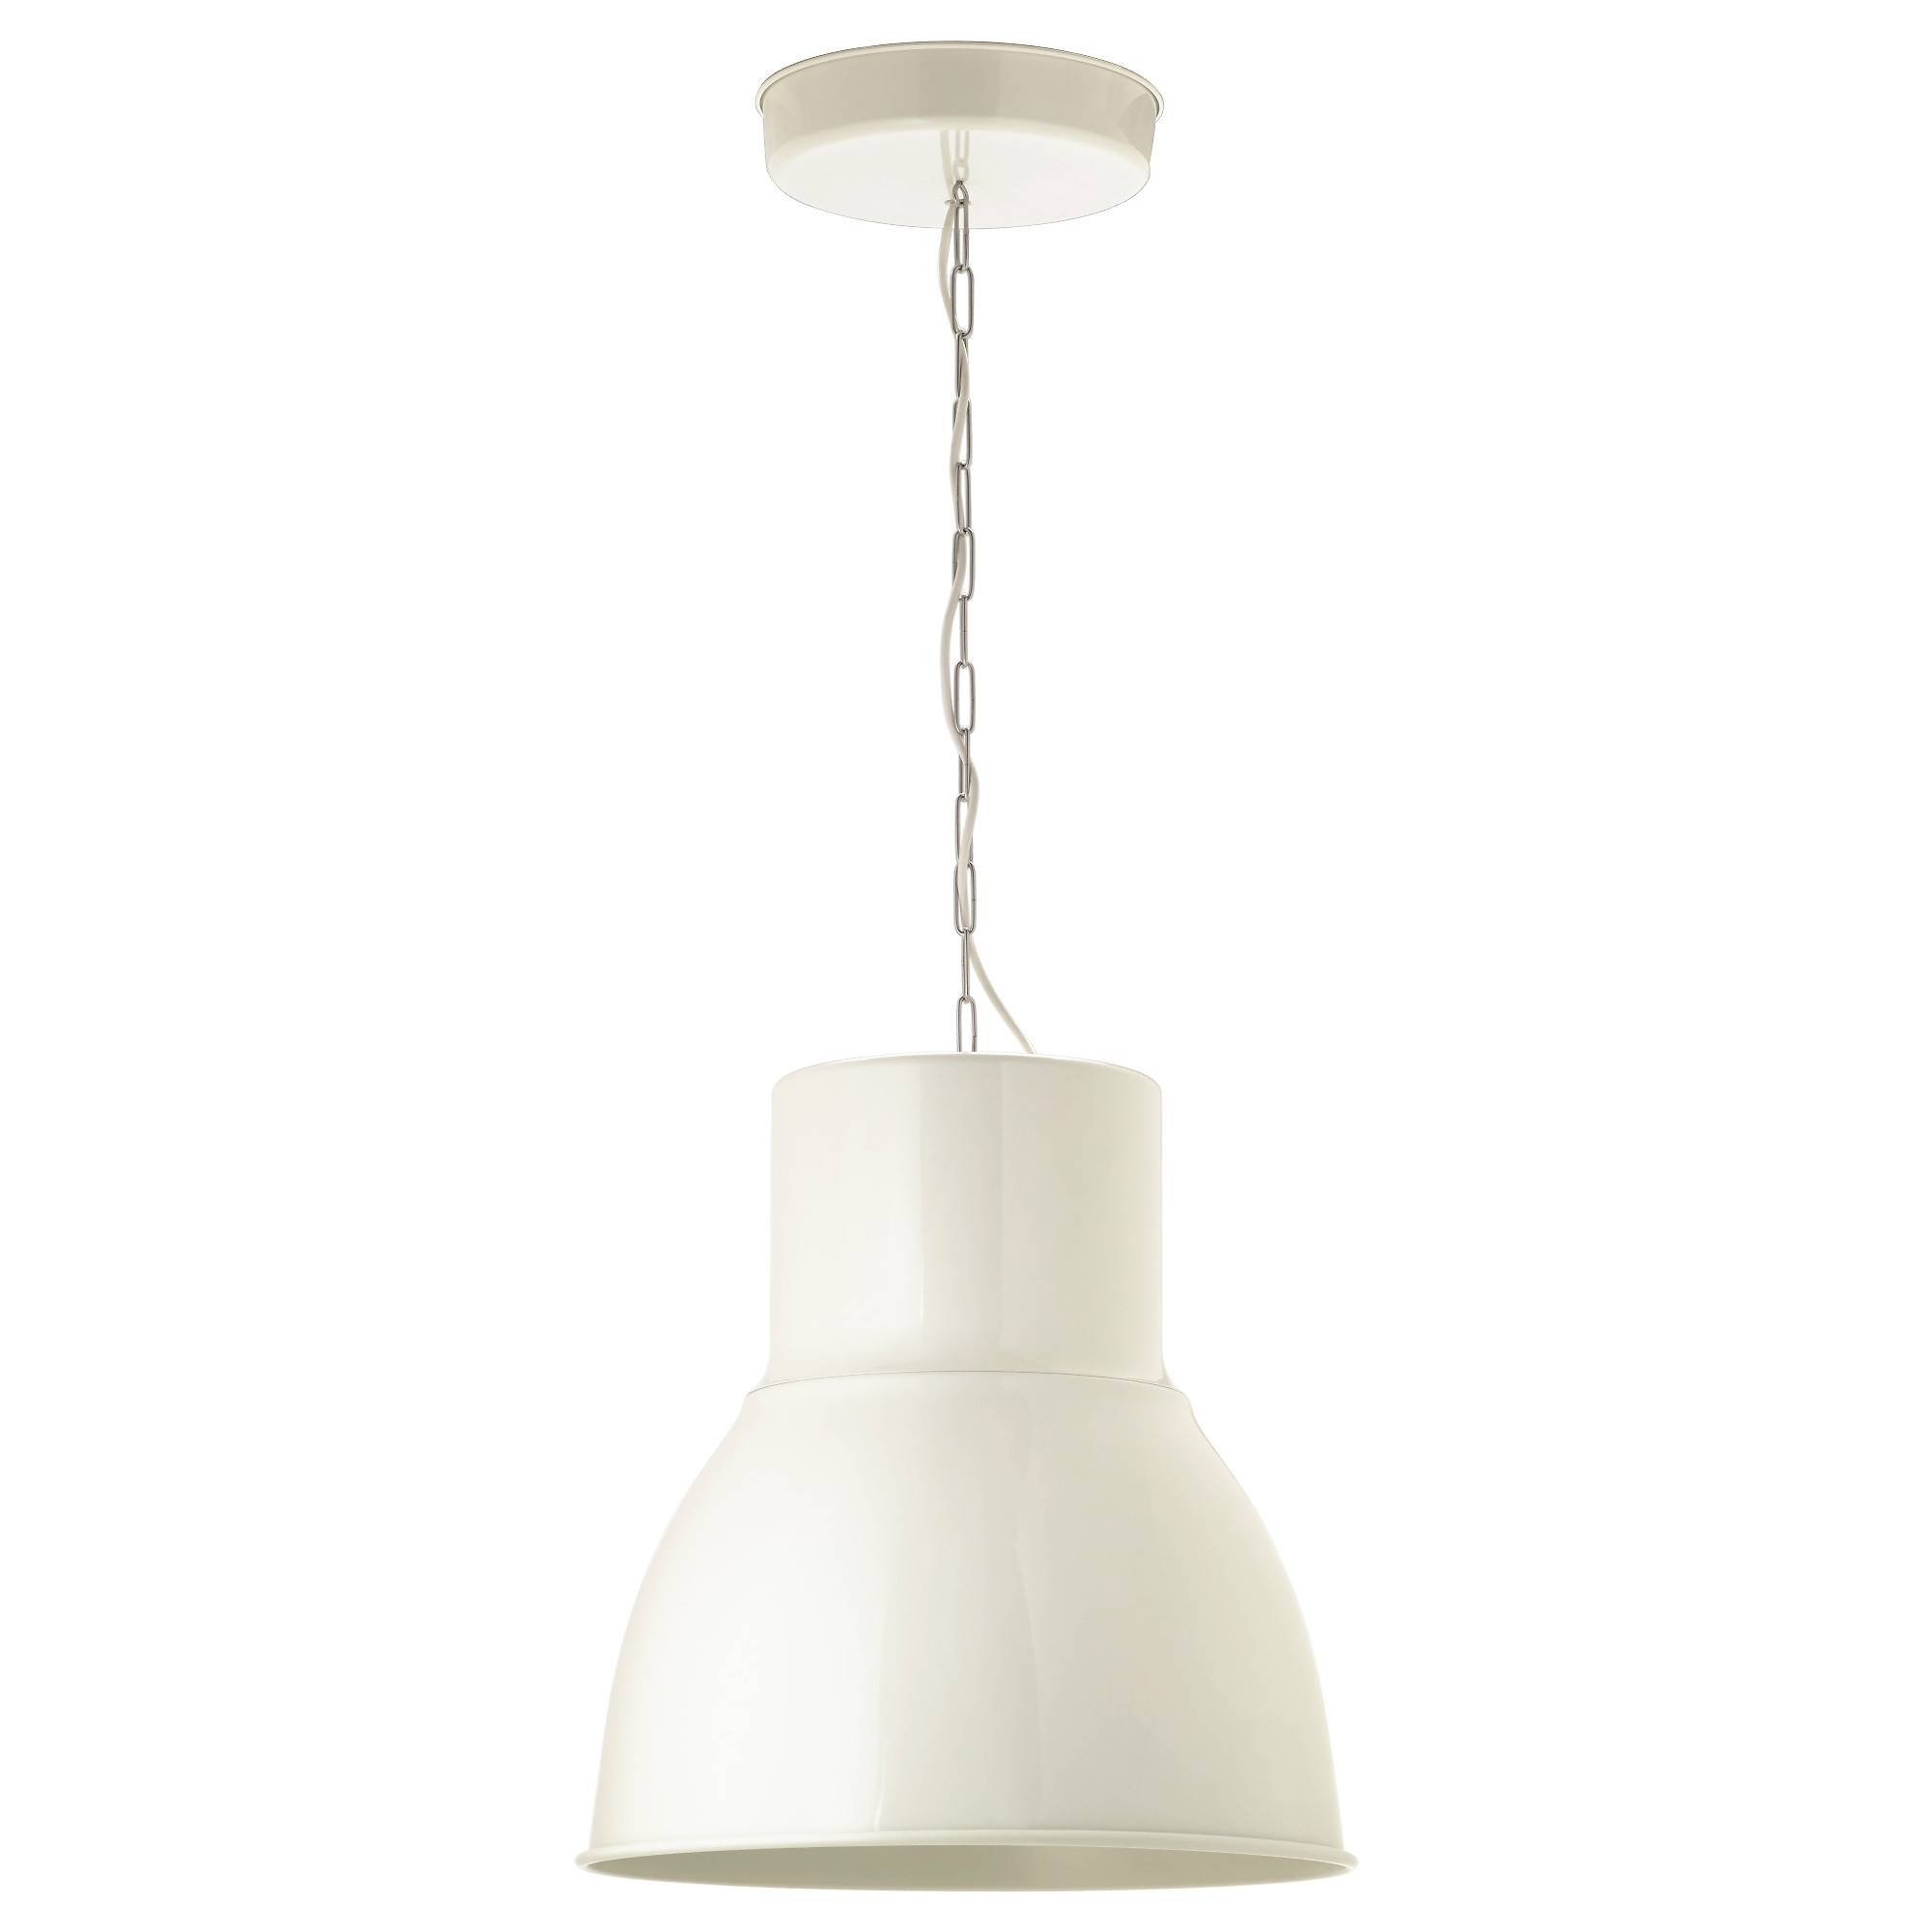 Hektar Pendant Lamp White 47 Cm - Ikea throughout Ikea Hanging Lights (Image 9 of 15)